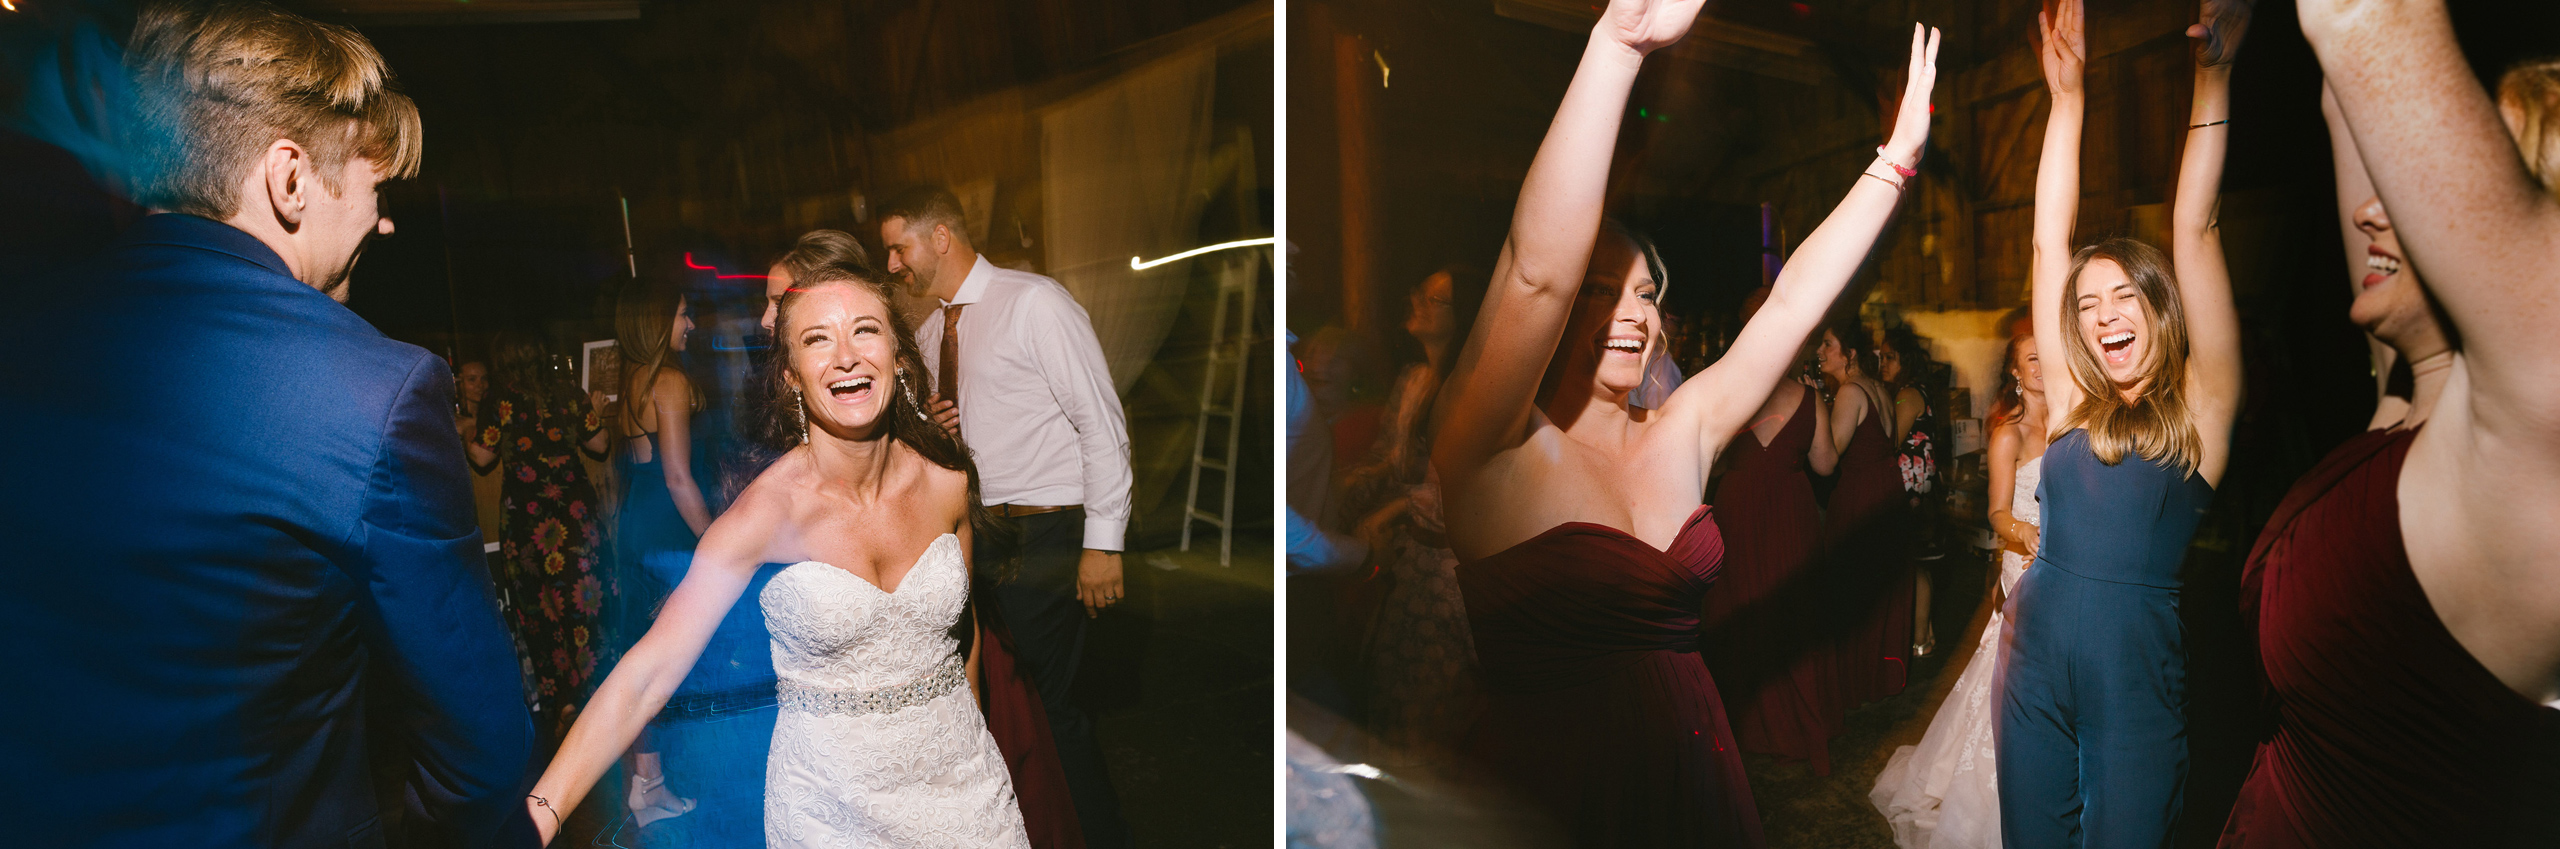 wedding reception dancing photography long exposure creative balls falls barn wedding